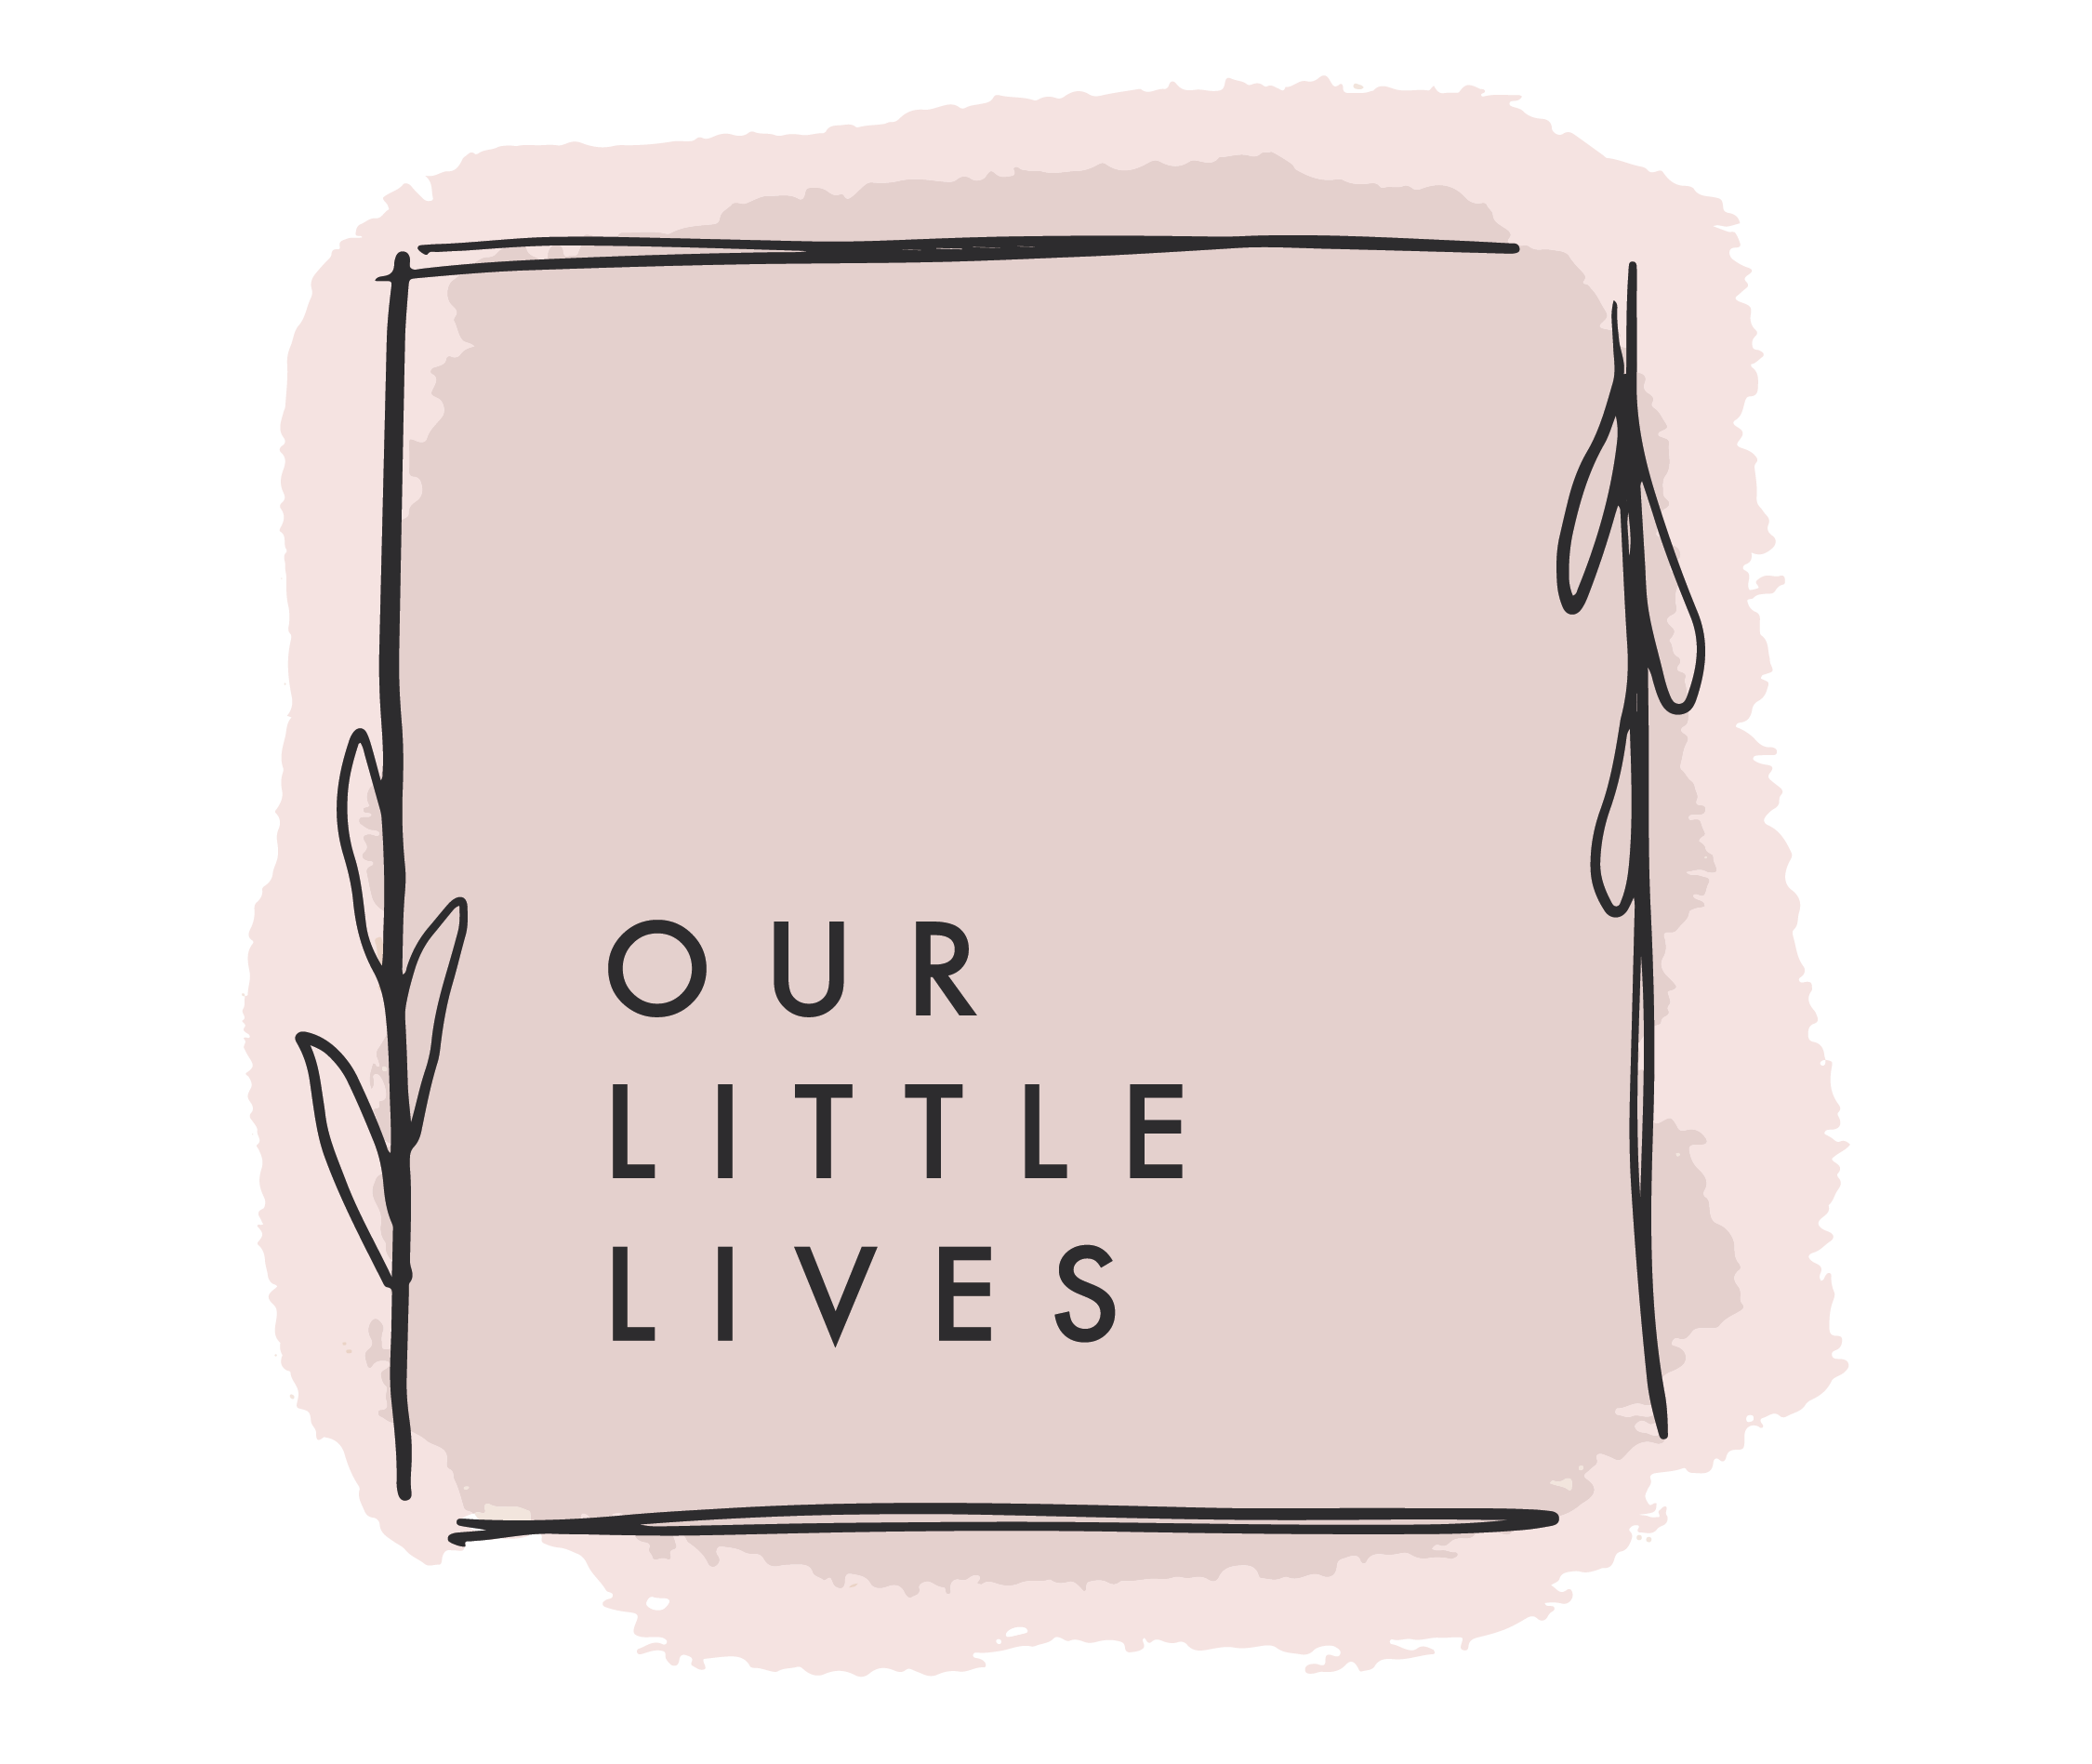 OUR LITTLE LIVES